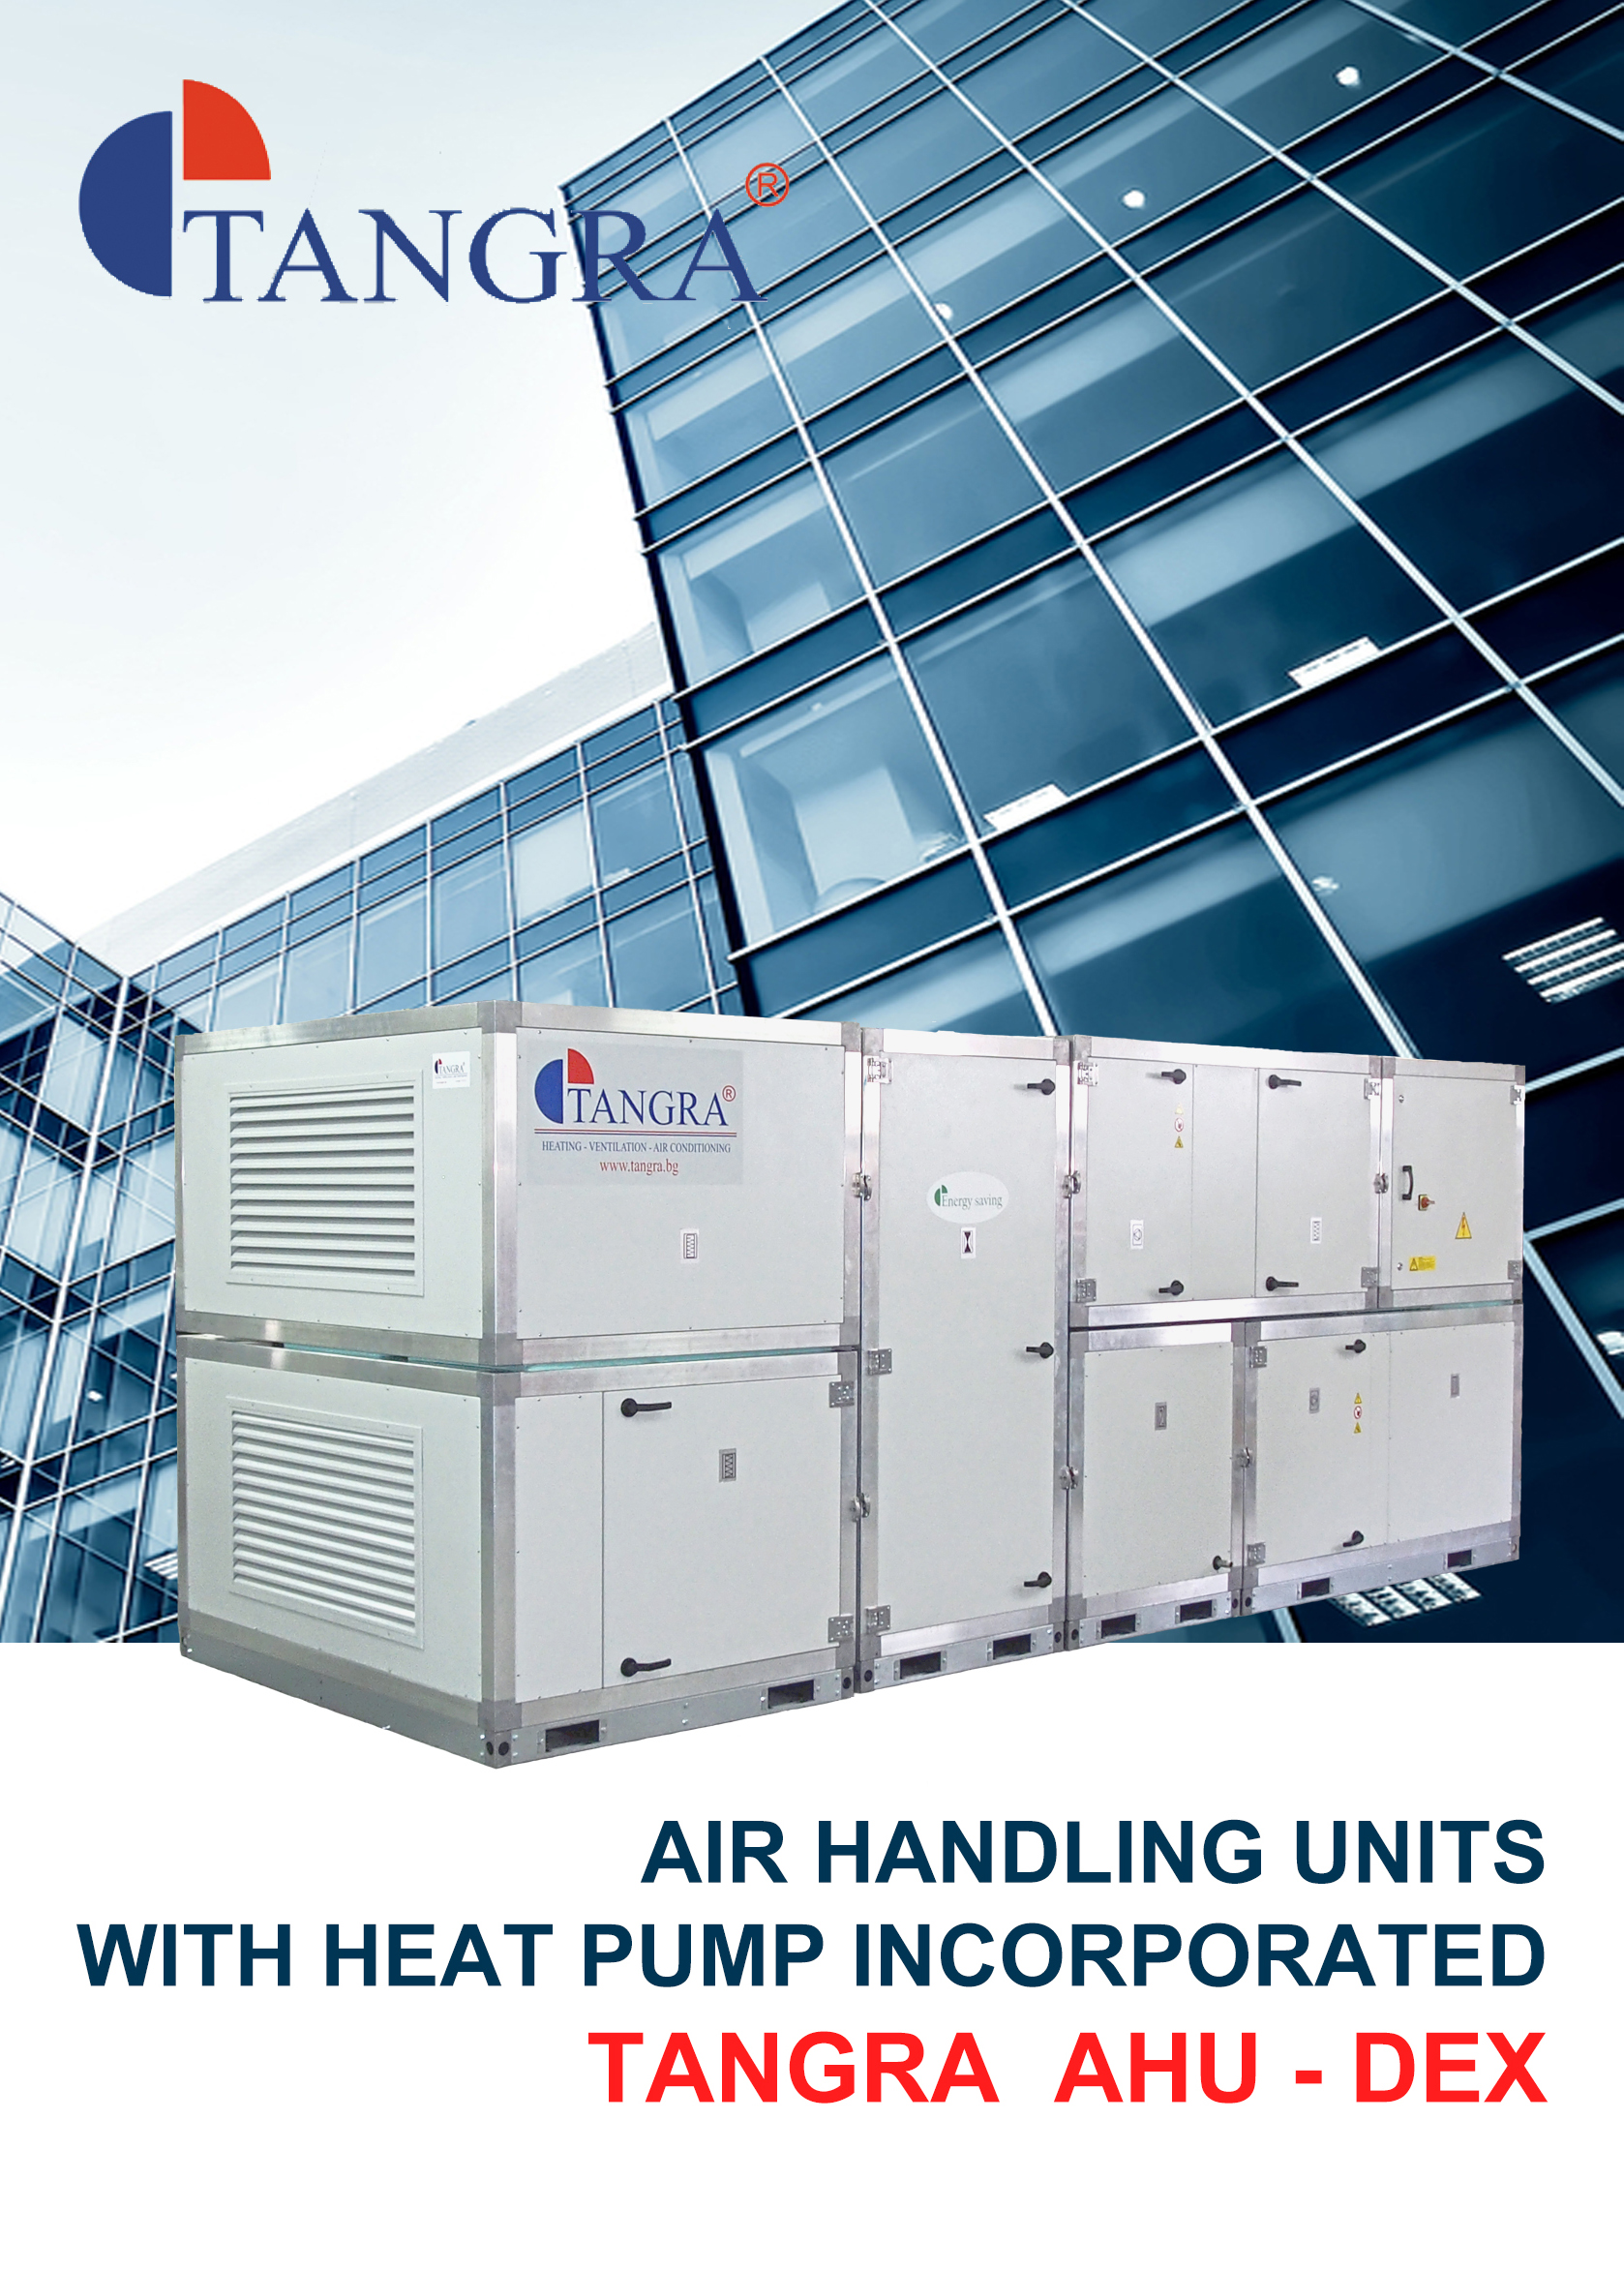 Tangra :: News AIR HANDLING UNITS WITH HEAT PUMP INCORPORATED  #C0120C